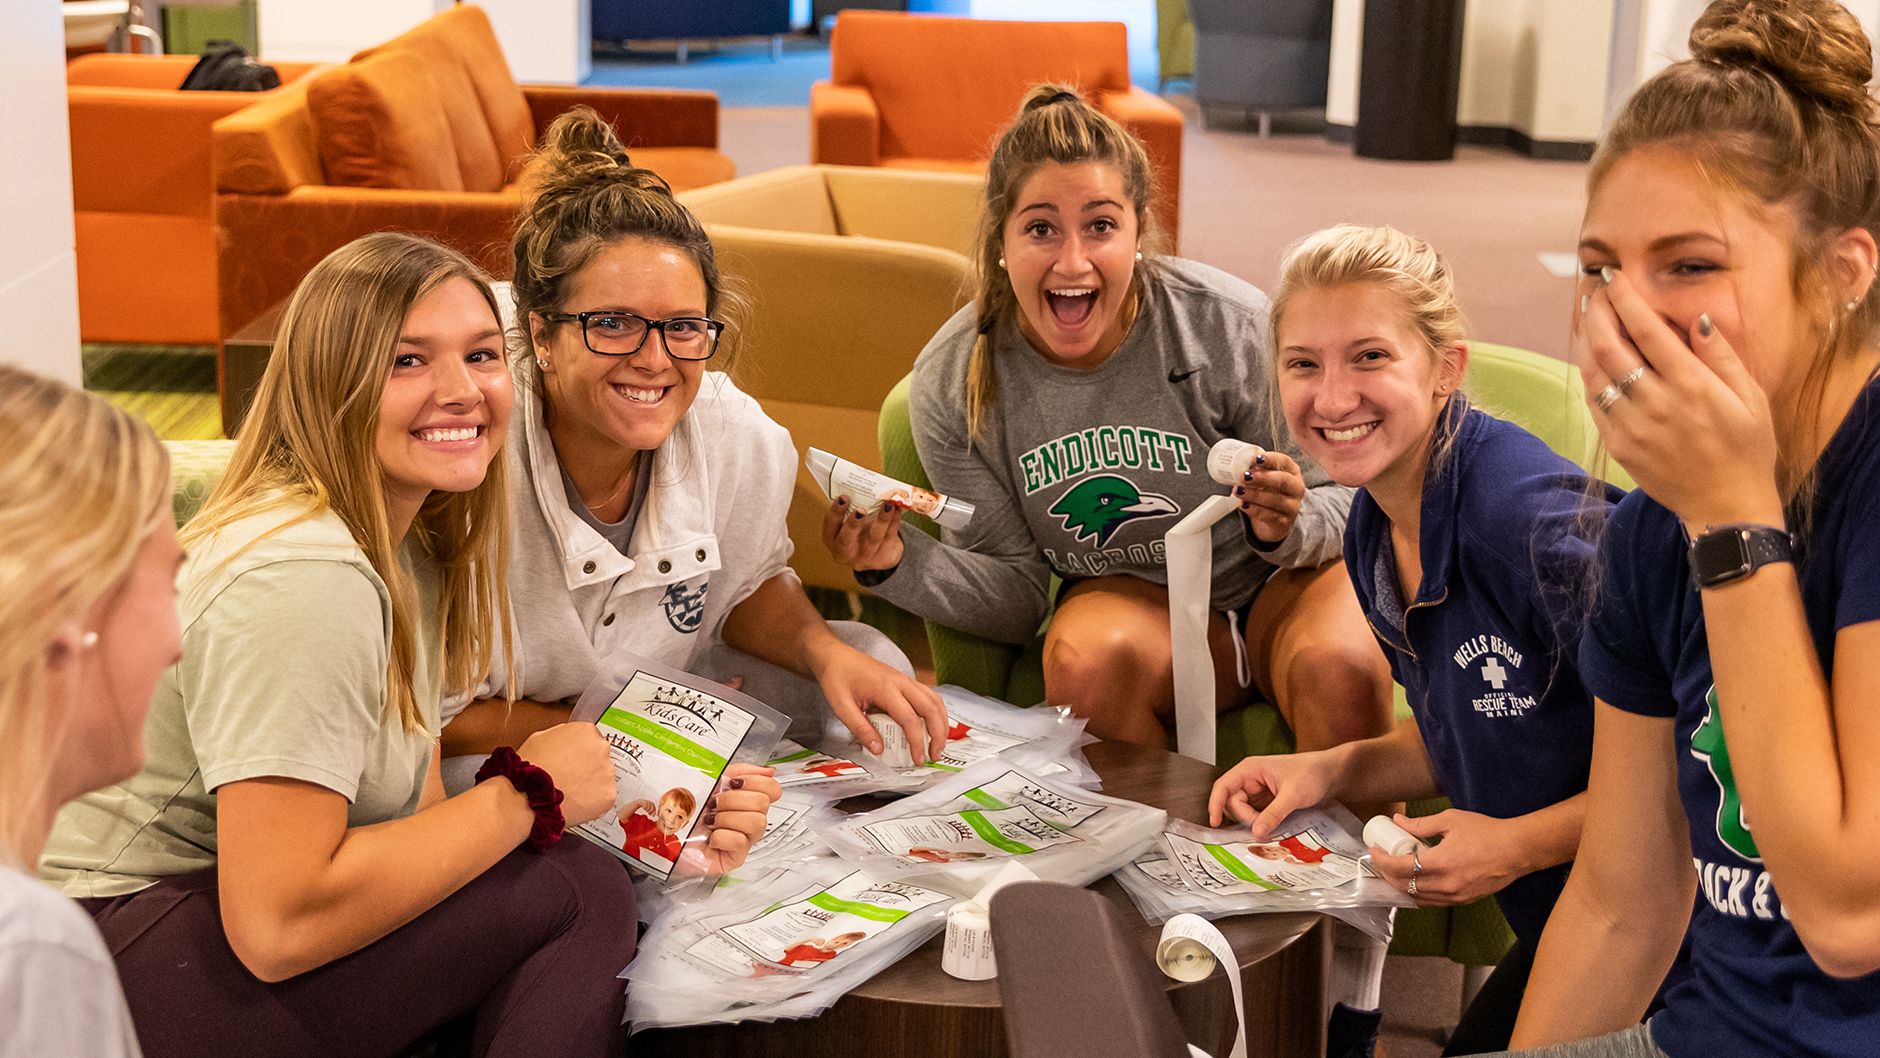 Make a Difference by Giving Back at Endicott College